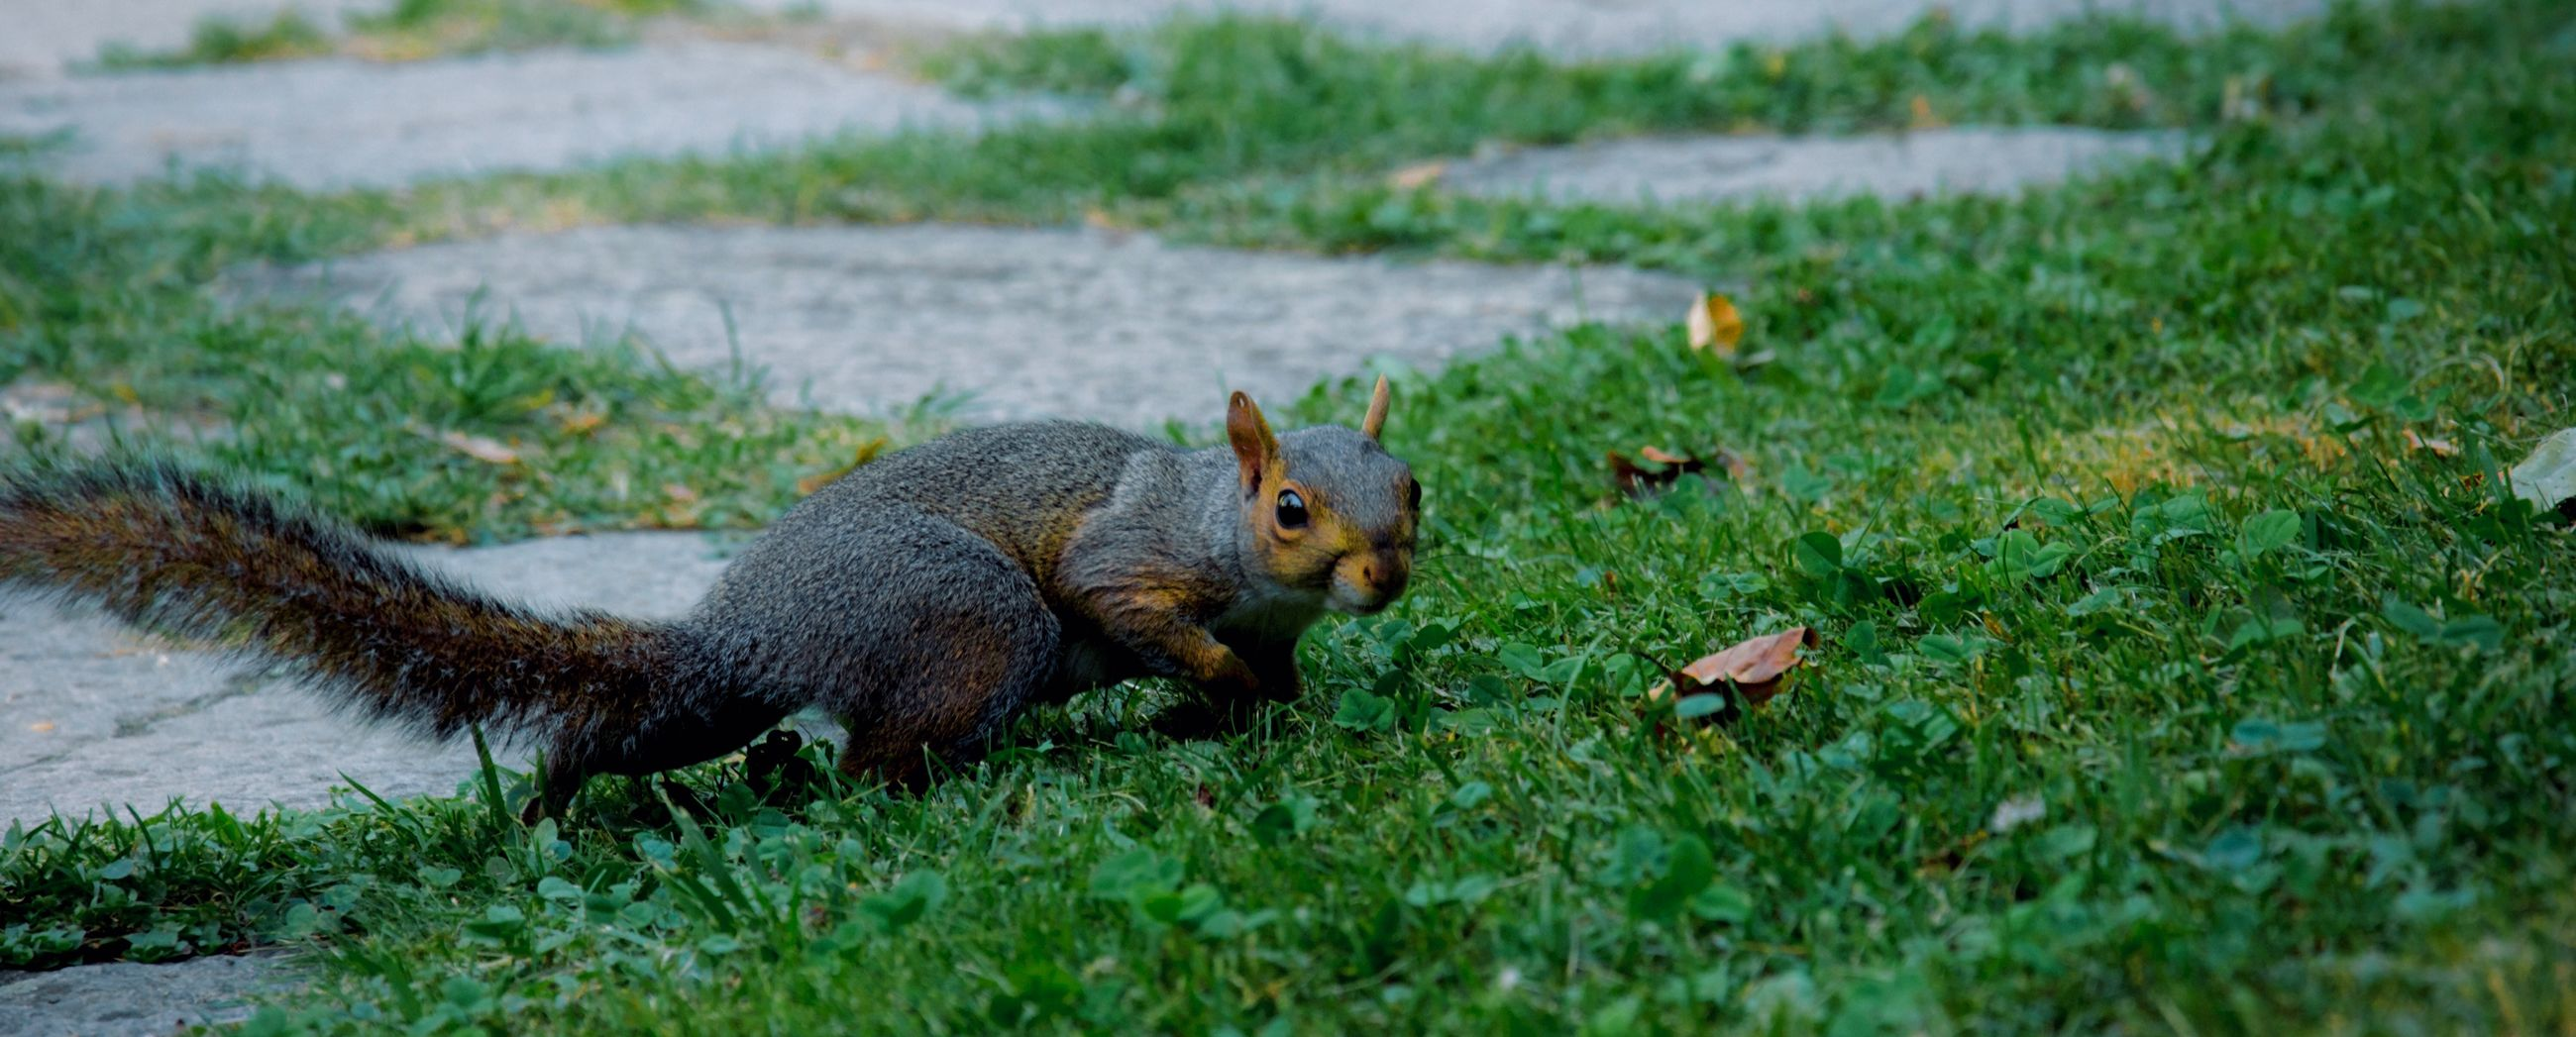 animal, animal themes, animal wildlife, mammal, animals in the wild, grass, one animal, plant, rodent, squirrel, vertebrate, no people, land, nature, green color, field, day, eating, selective focus, outdoors